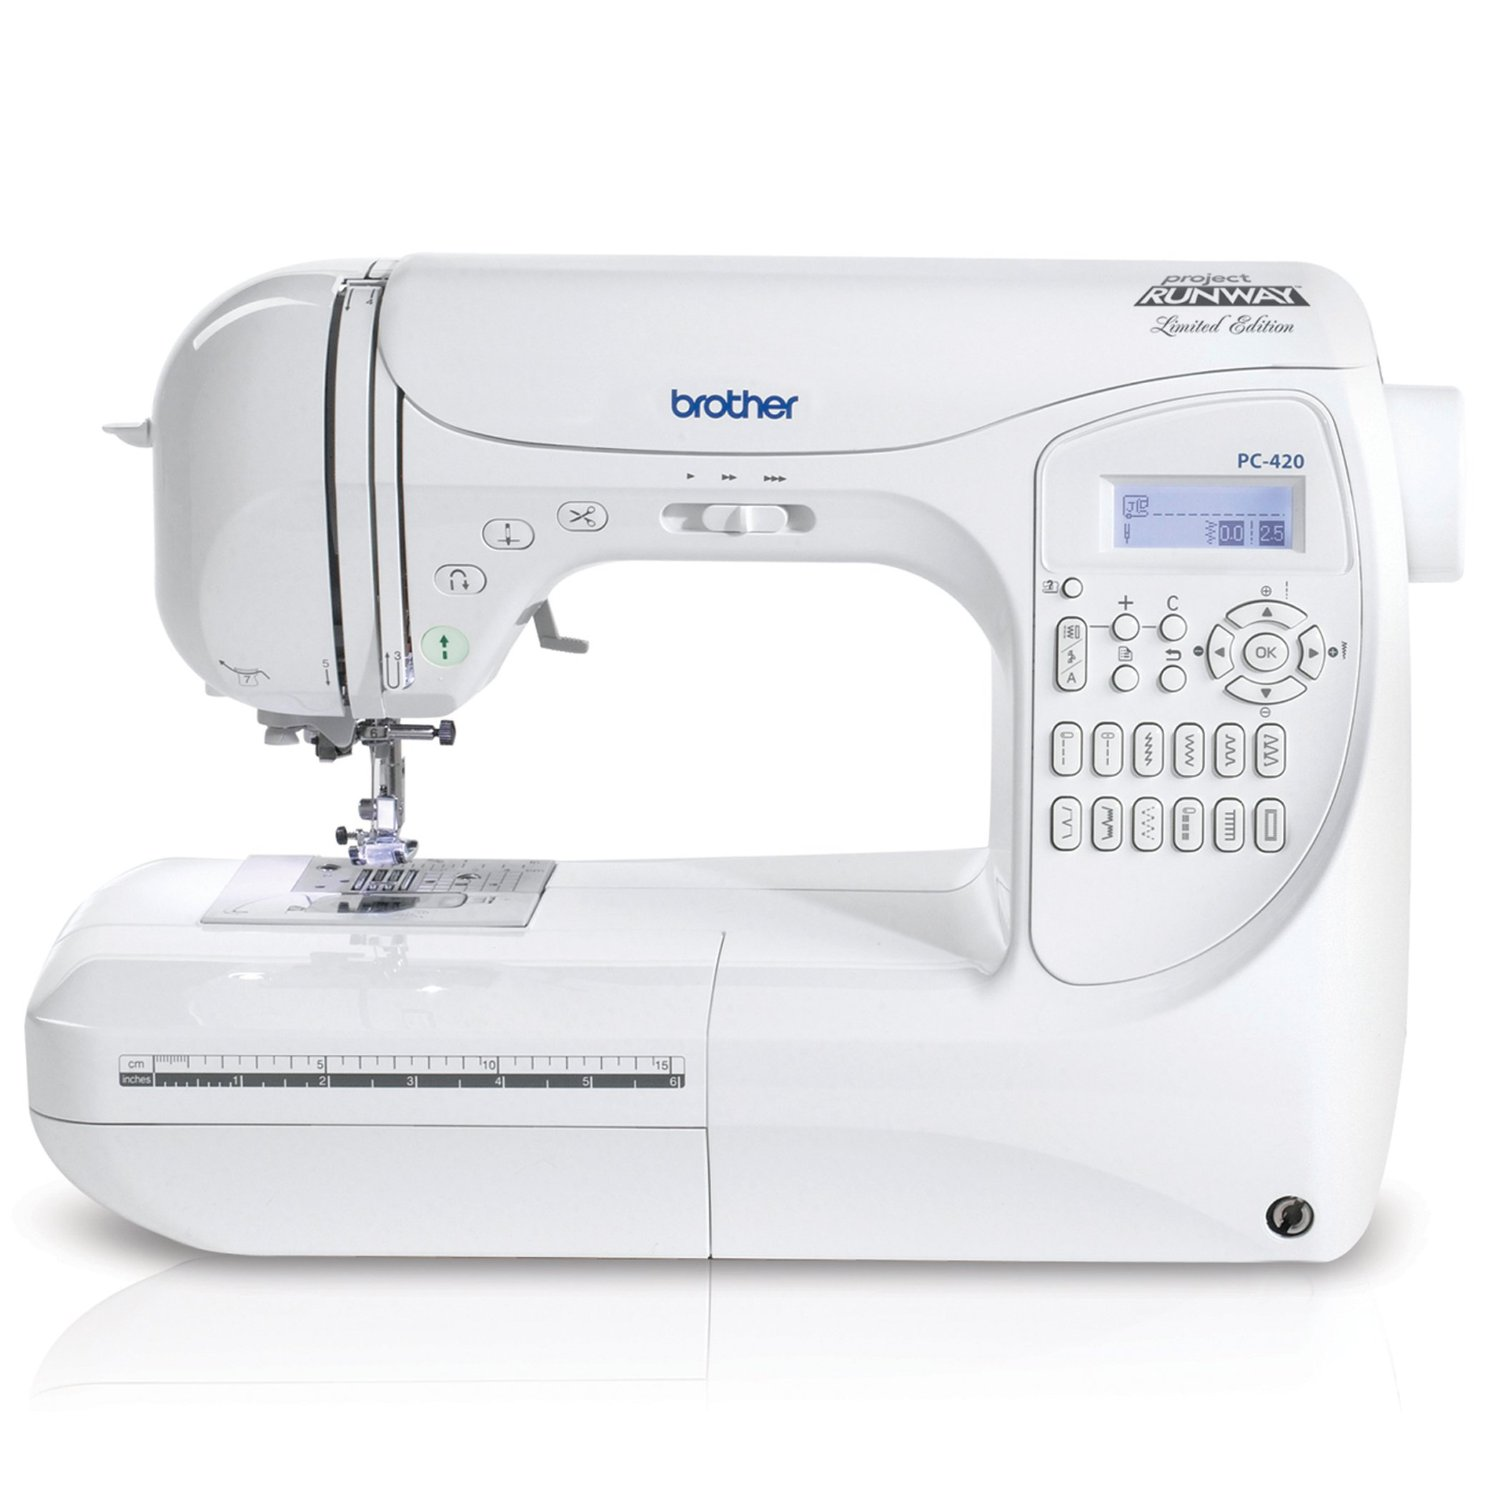 Best Brother Sewing & Embroidery Machine Review: This high-end Brother machine is for you if you're a pro sewer & embroiderer